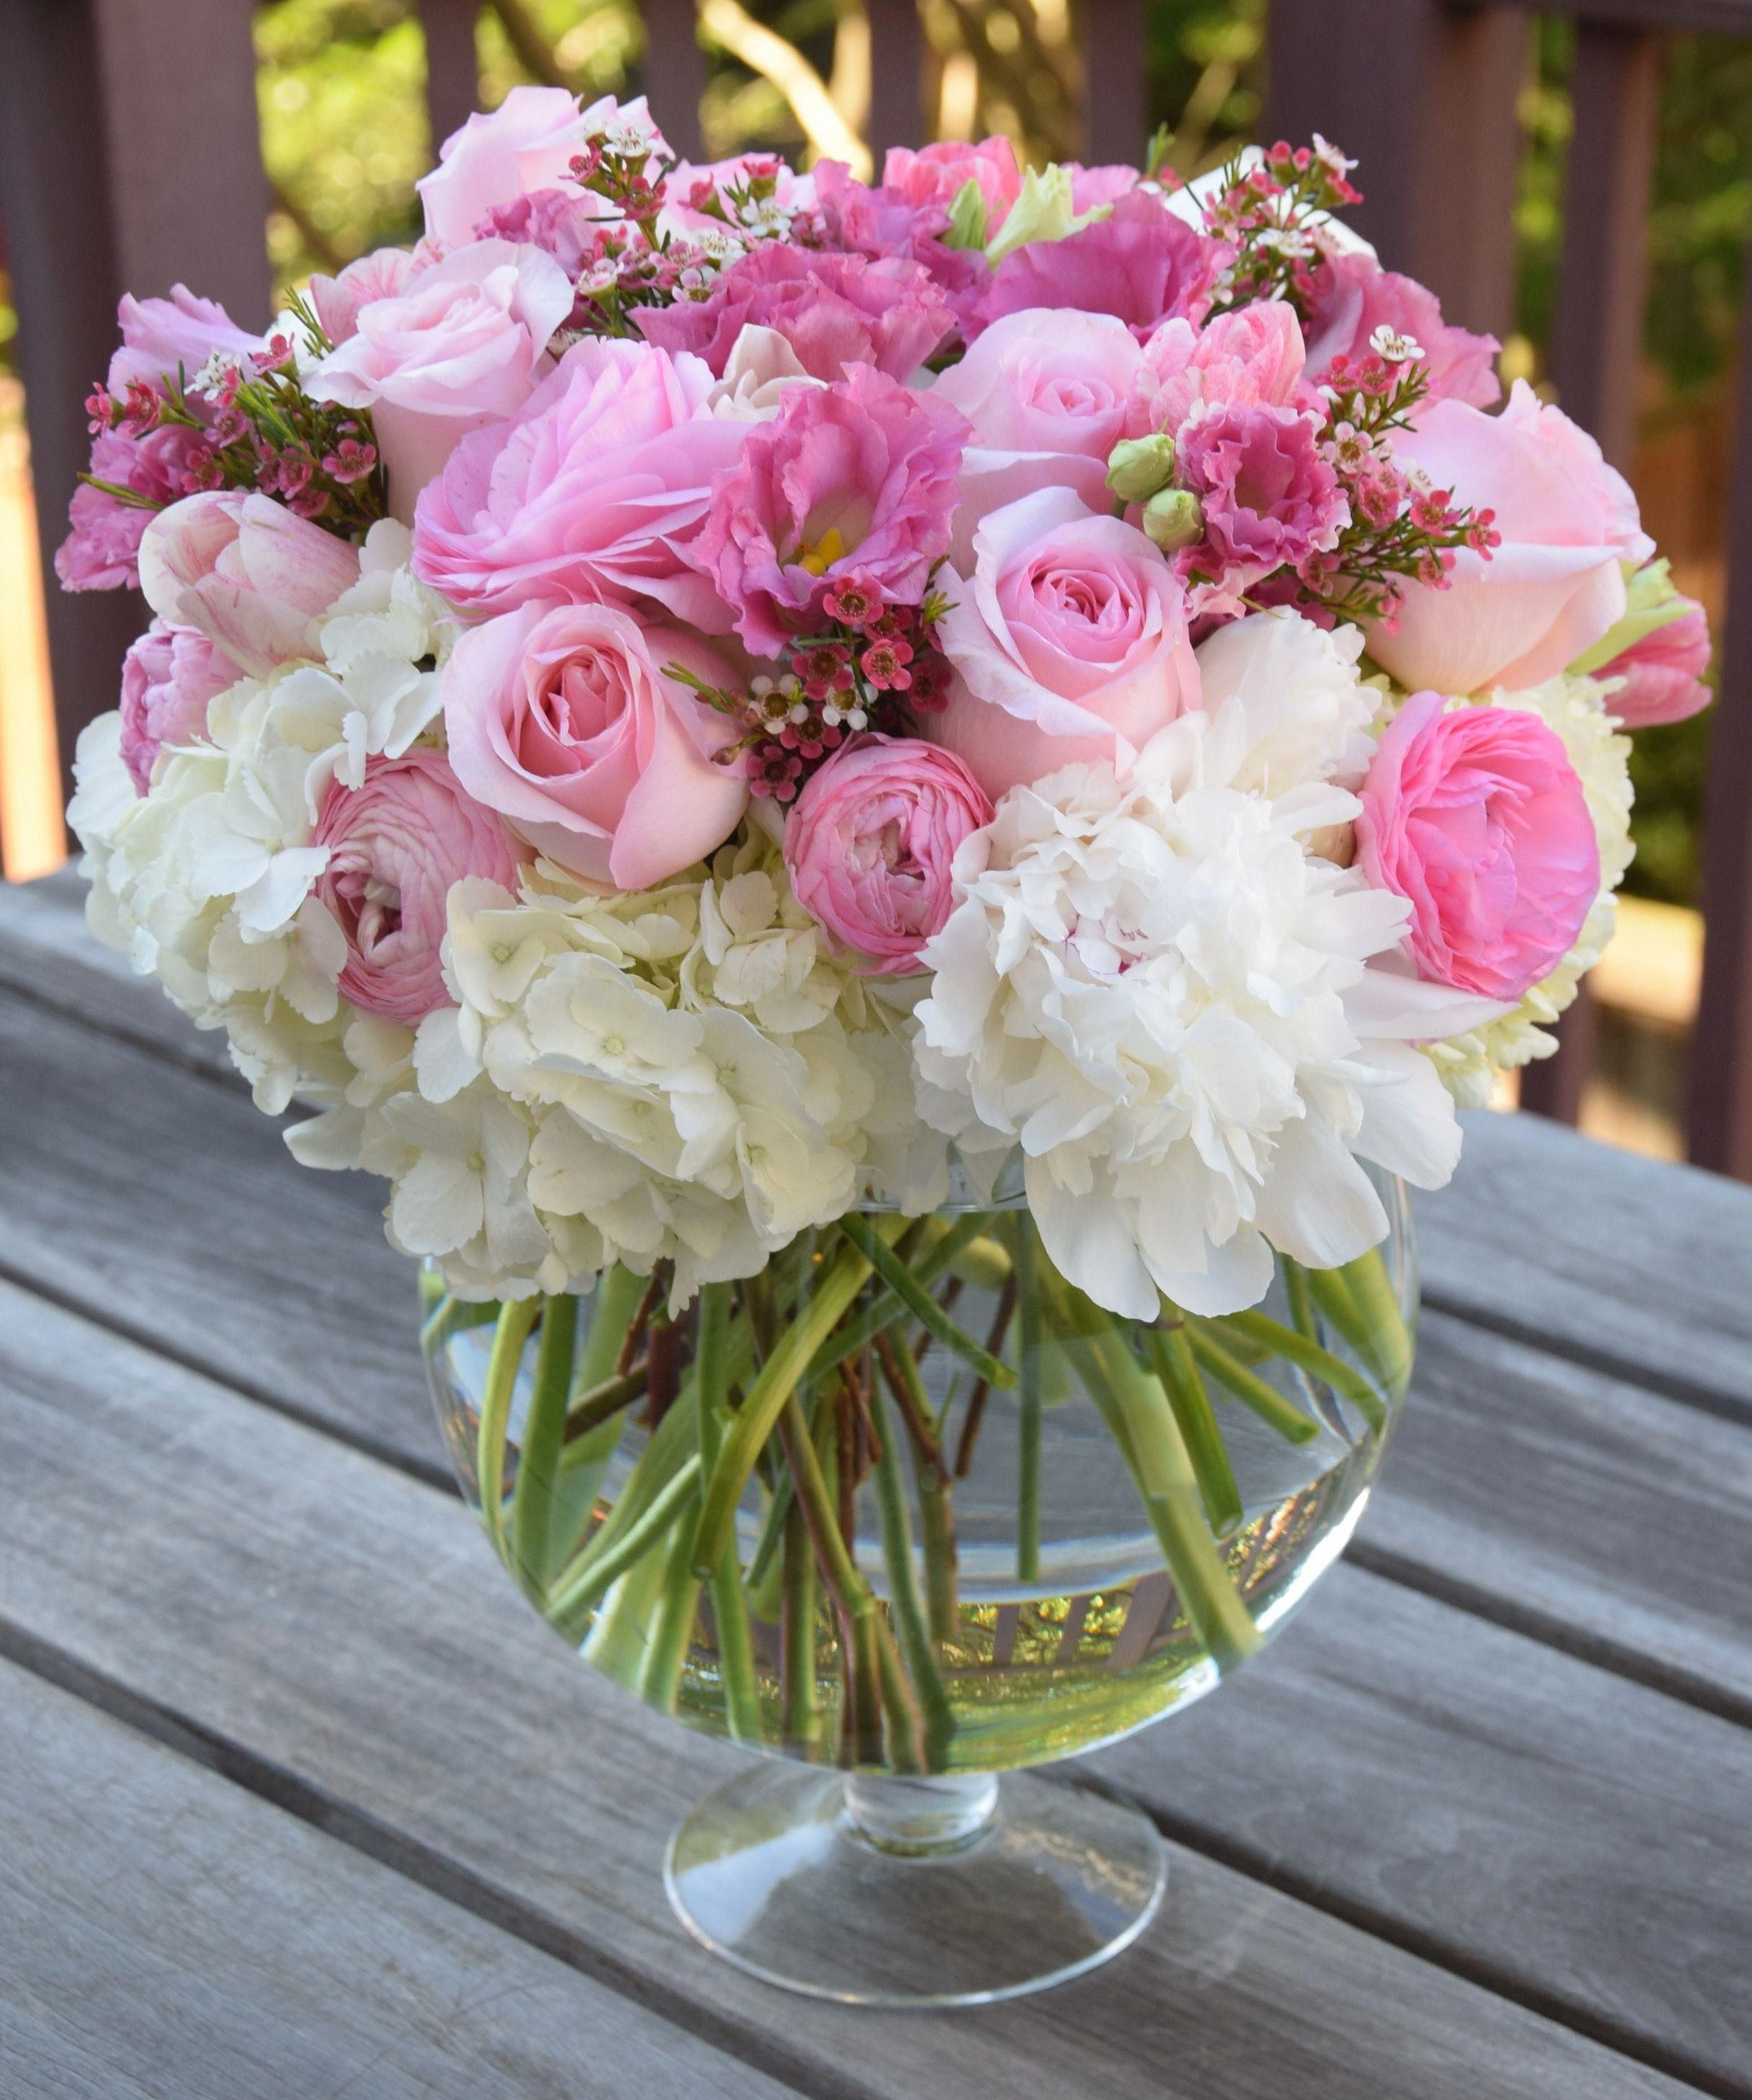 Birthday Flower Arrangement In Pink And White Roses Lisianthus Ranunculus Peonies Hydrangeas Wax Tulips Ranunculus Bouquet Da Sposa Bouquet Sposa